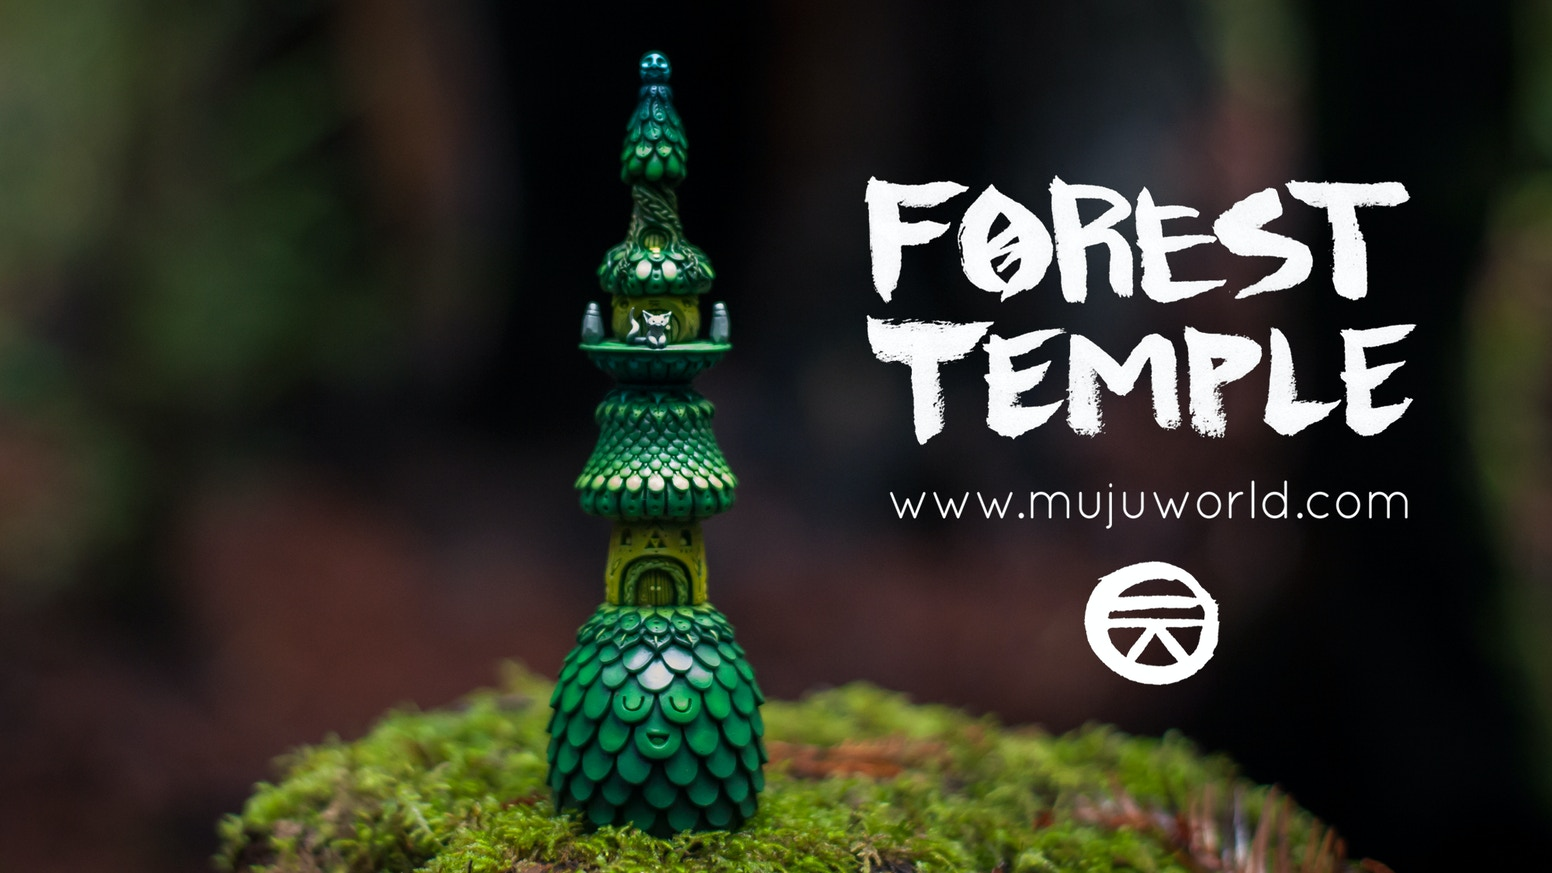 Help launch a new handmade sculpture series by Muju World - The Forest Temple and the Spirit Houses